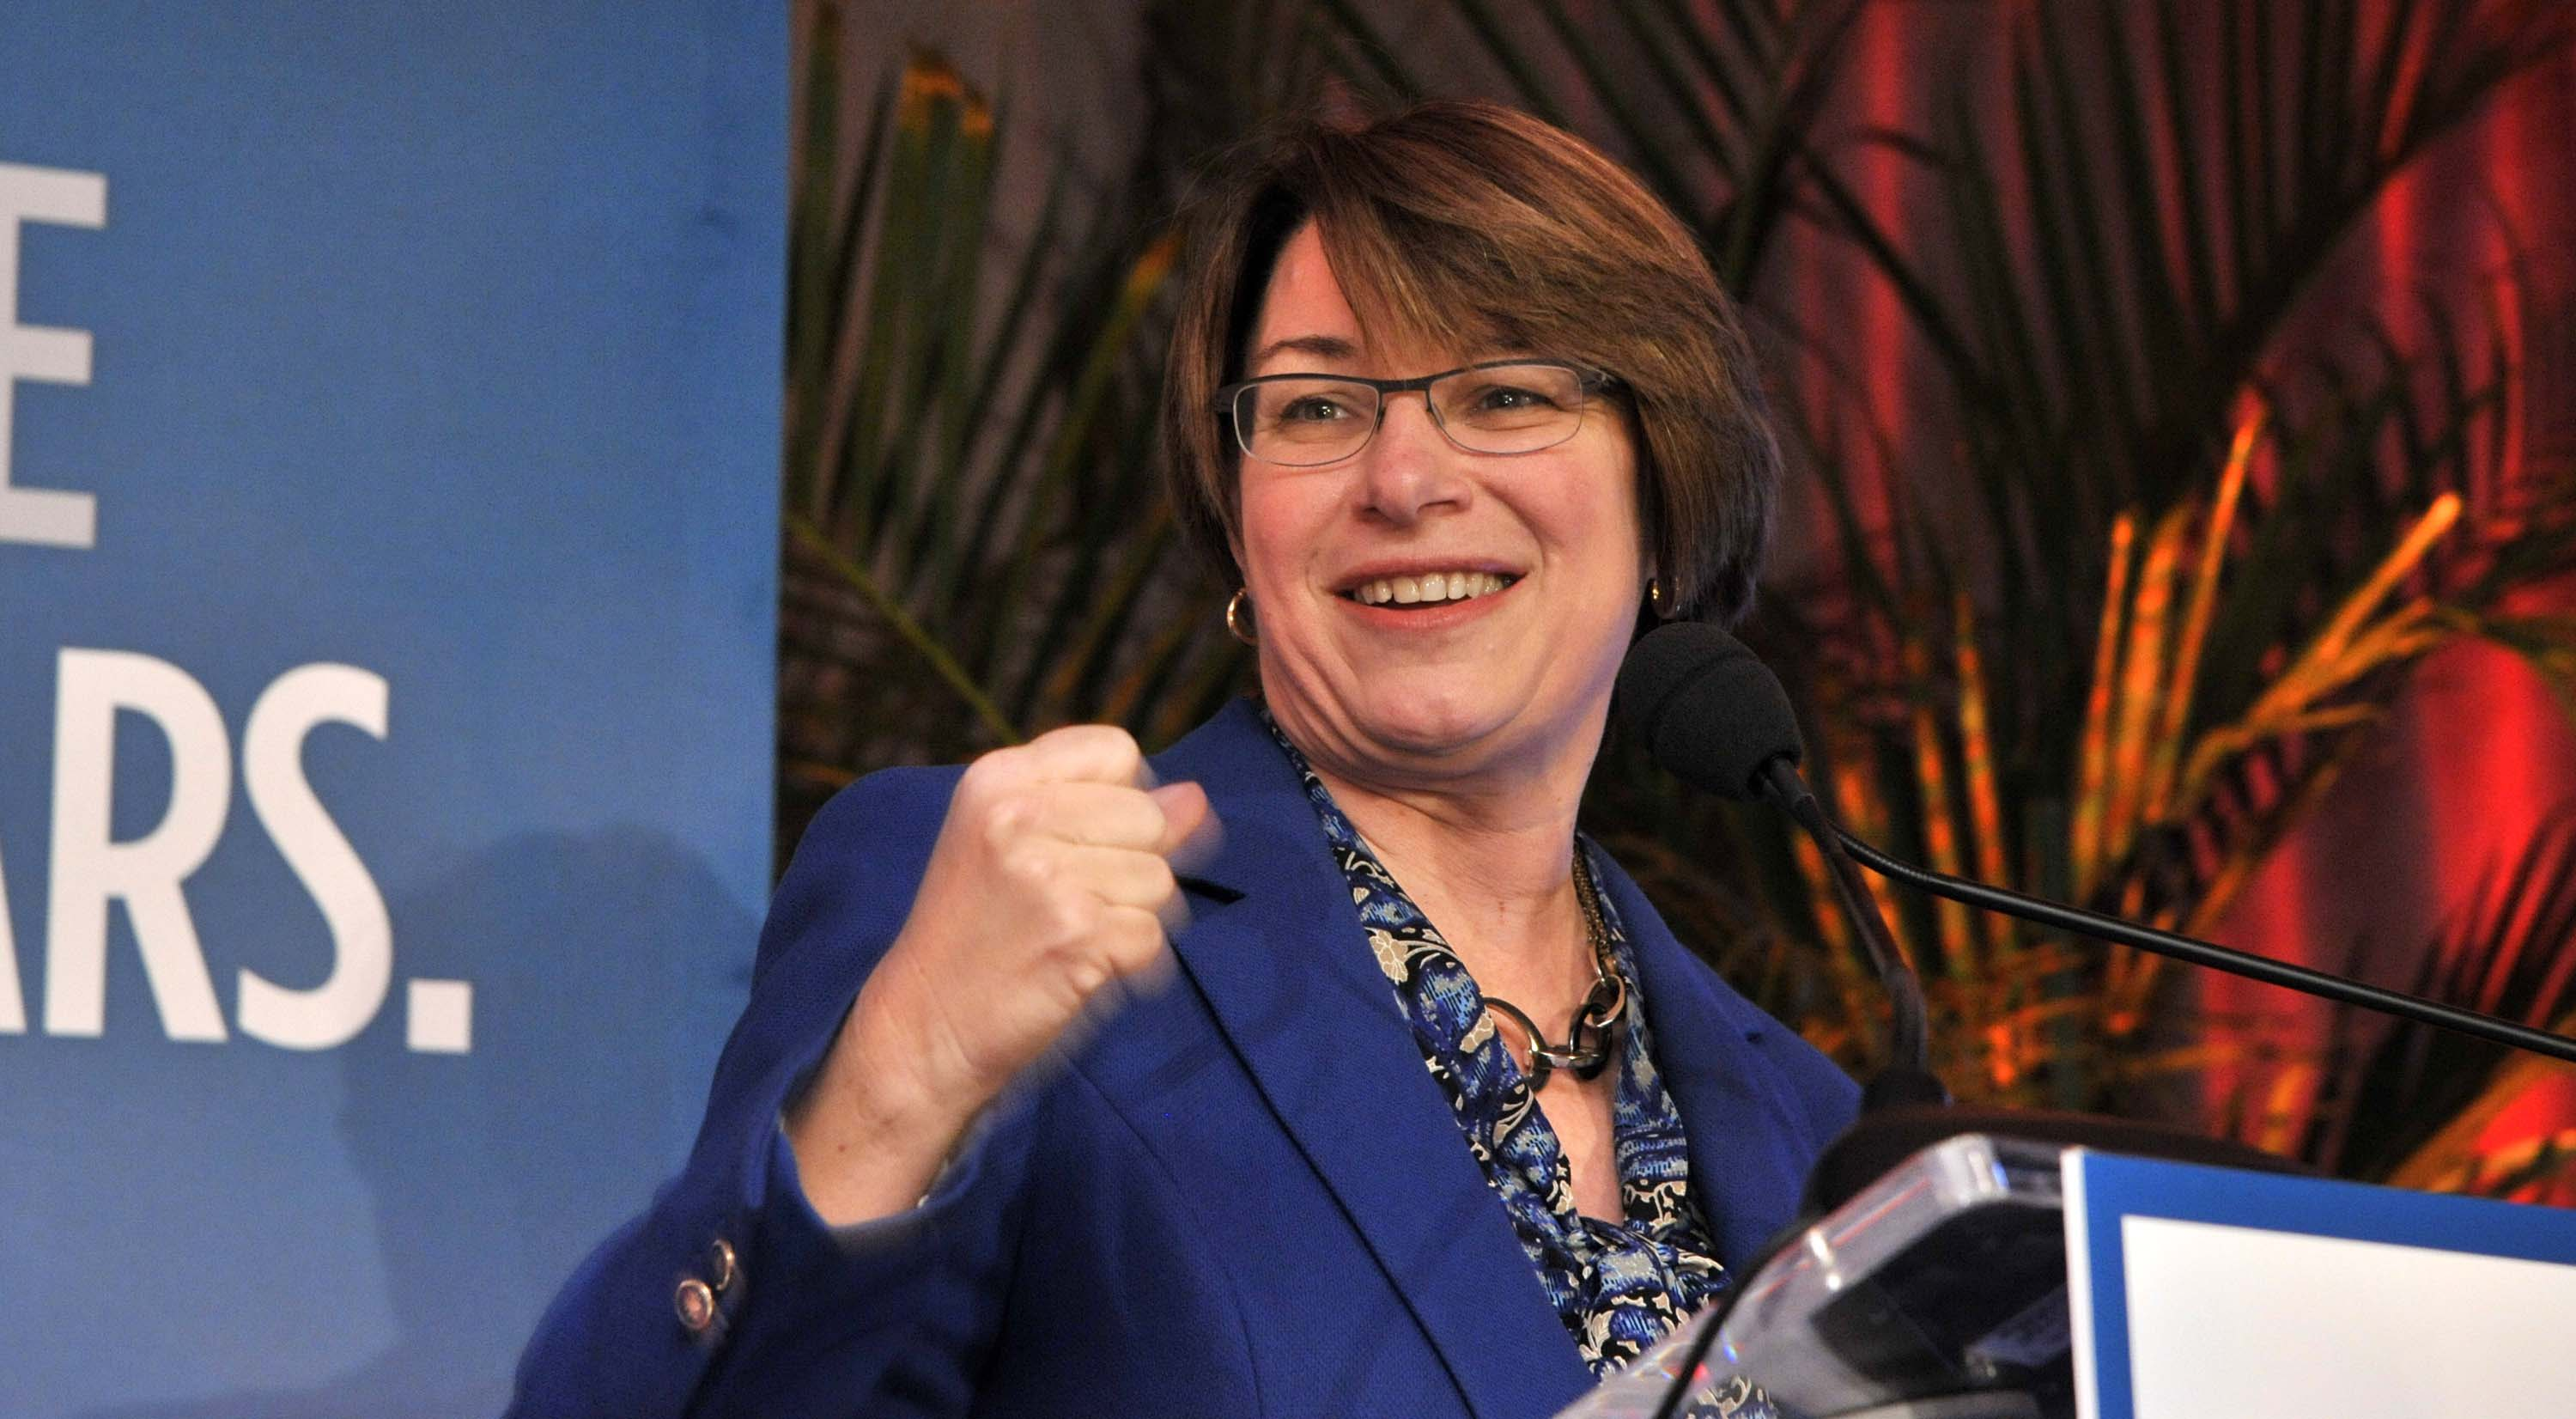 Westlake Legal Group Amy-Klobuchar-latino Fox News to host town hall with Sen. Amy Klobuchar fox-news/politics/elections/democrats fox-news/politics/elections fox-news/politics/2020-presidential-election fox-news/person/amy-klobuchar fox-news/entertainment/media fox-news/entertainment fox news fnc/entertainment fnc article 53ccb24b-7b05-57dc-8caa-fad9785205c1